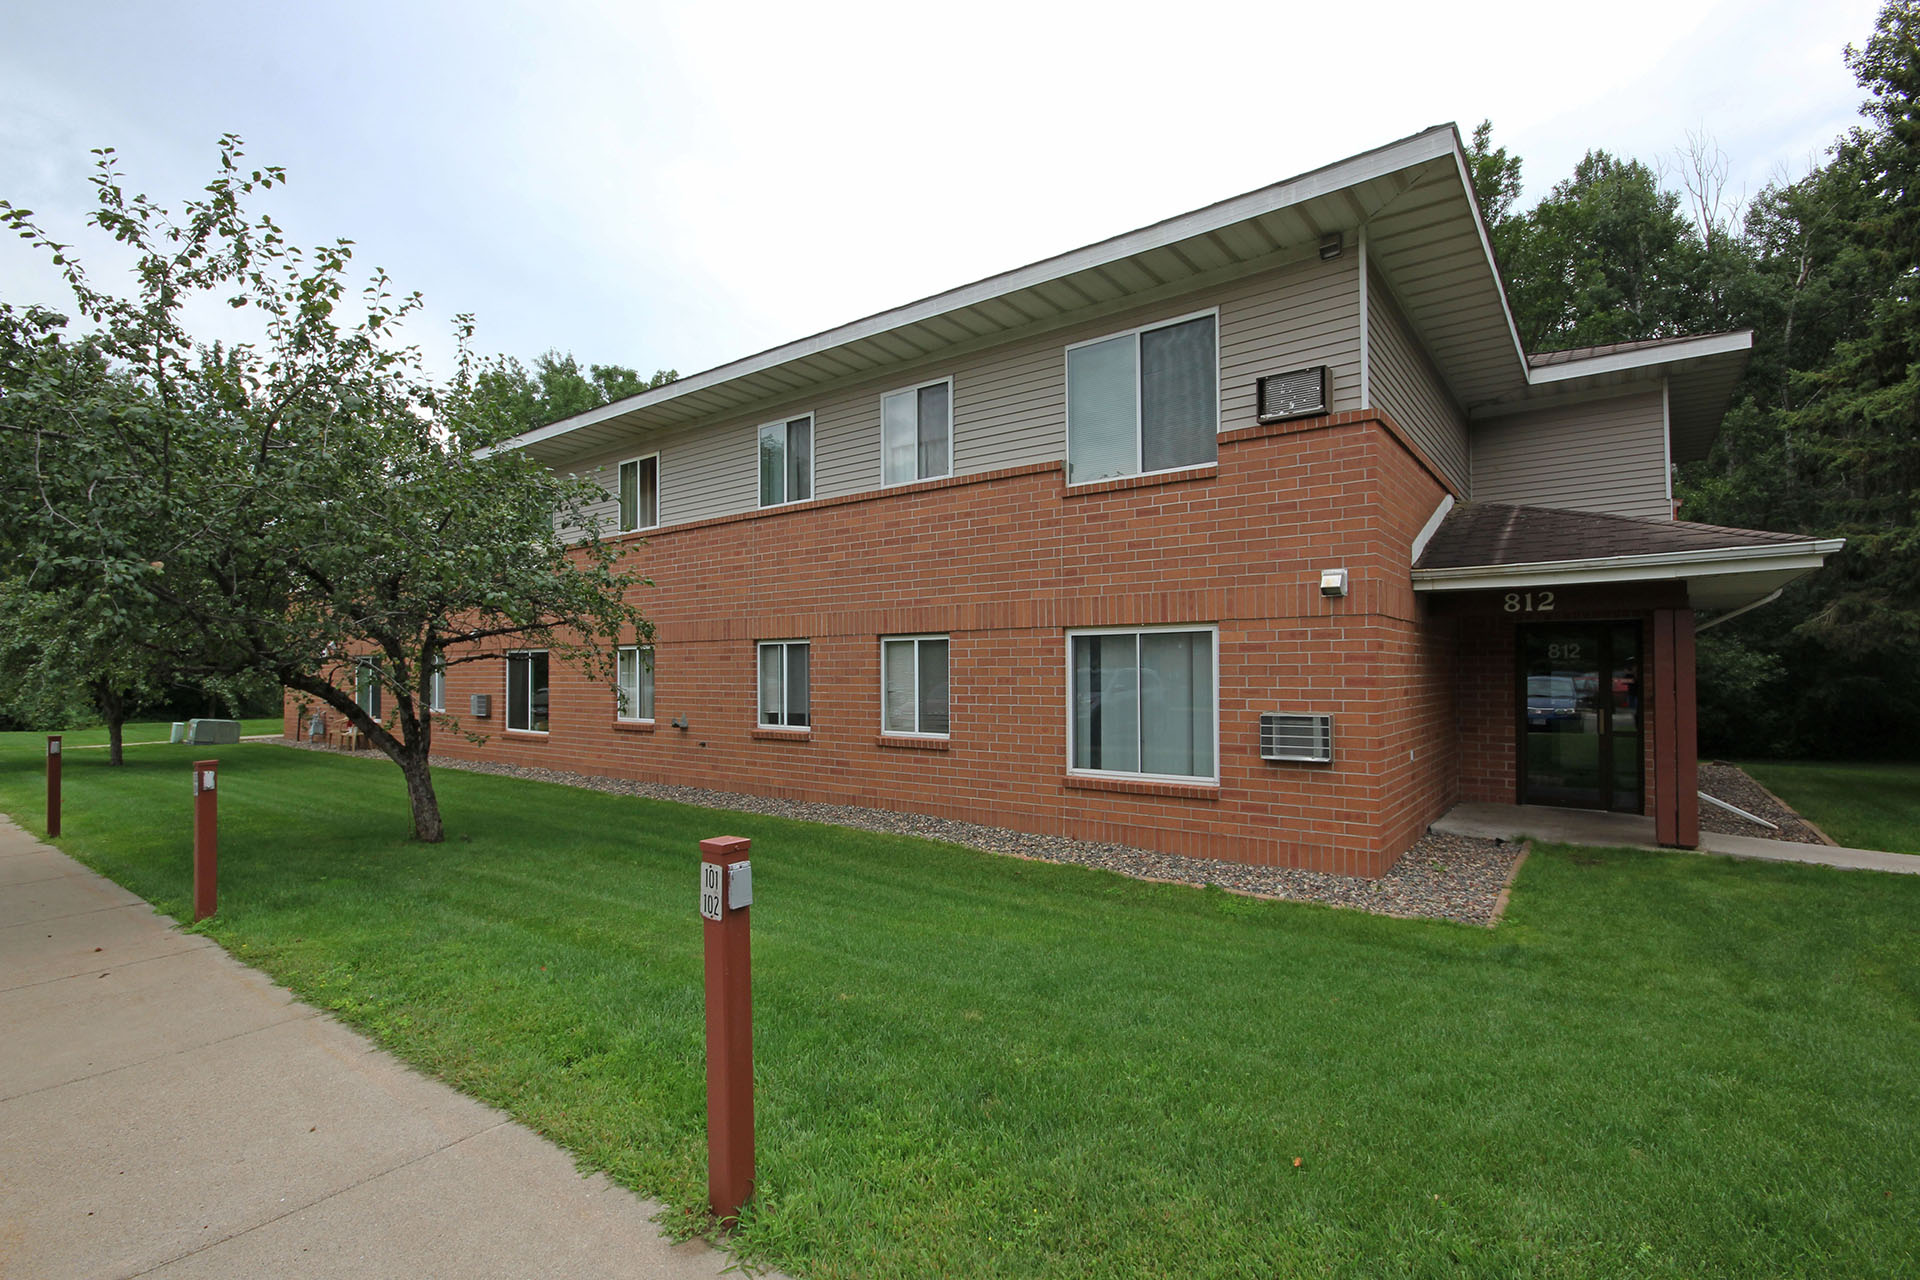 Image of Ridgeview II Apartments in Brainerd, Minnesota